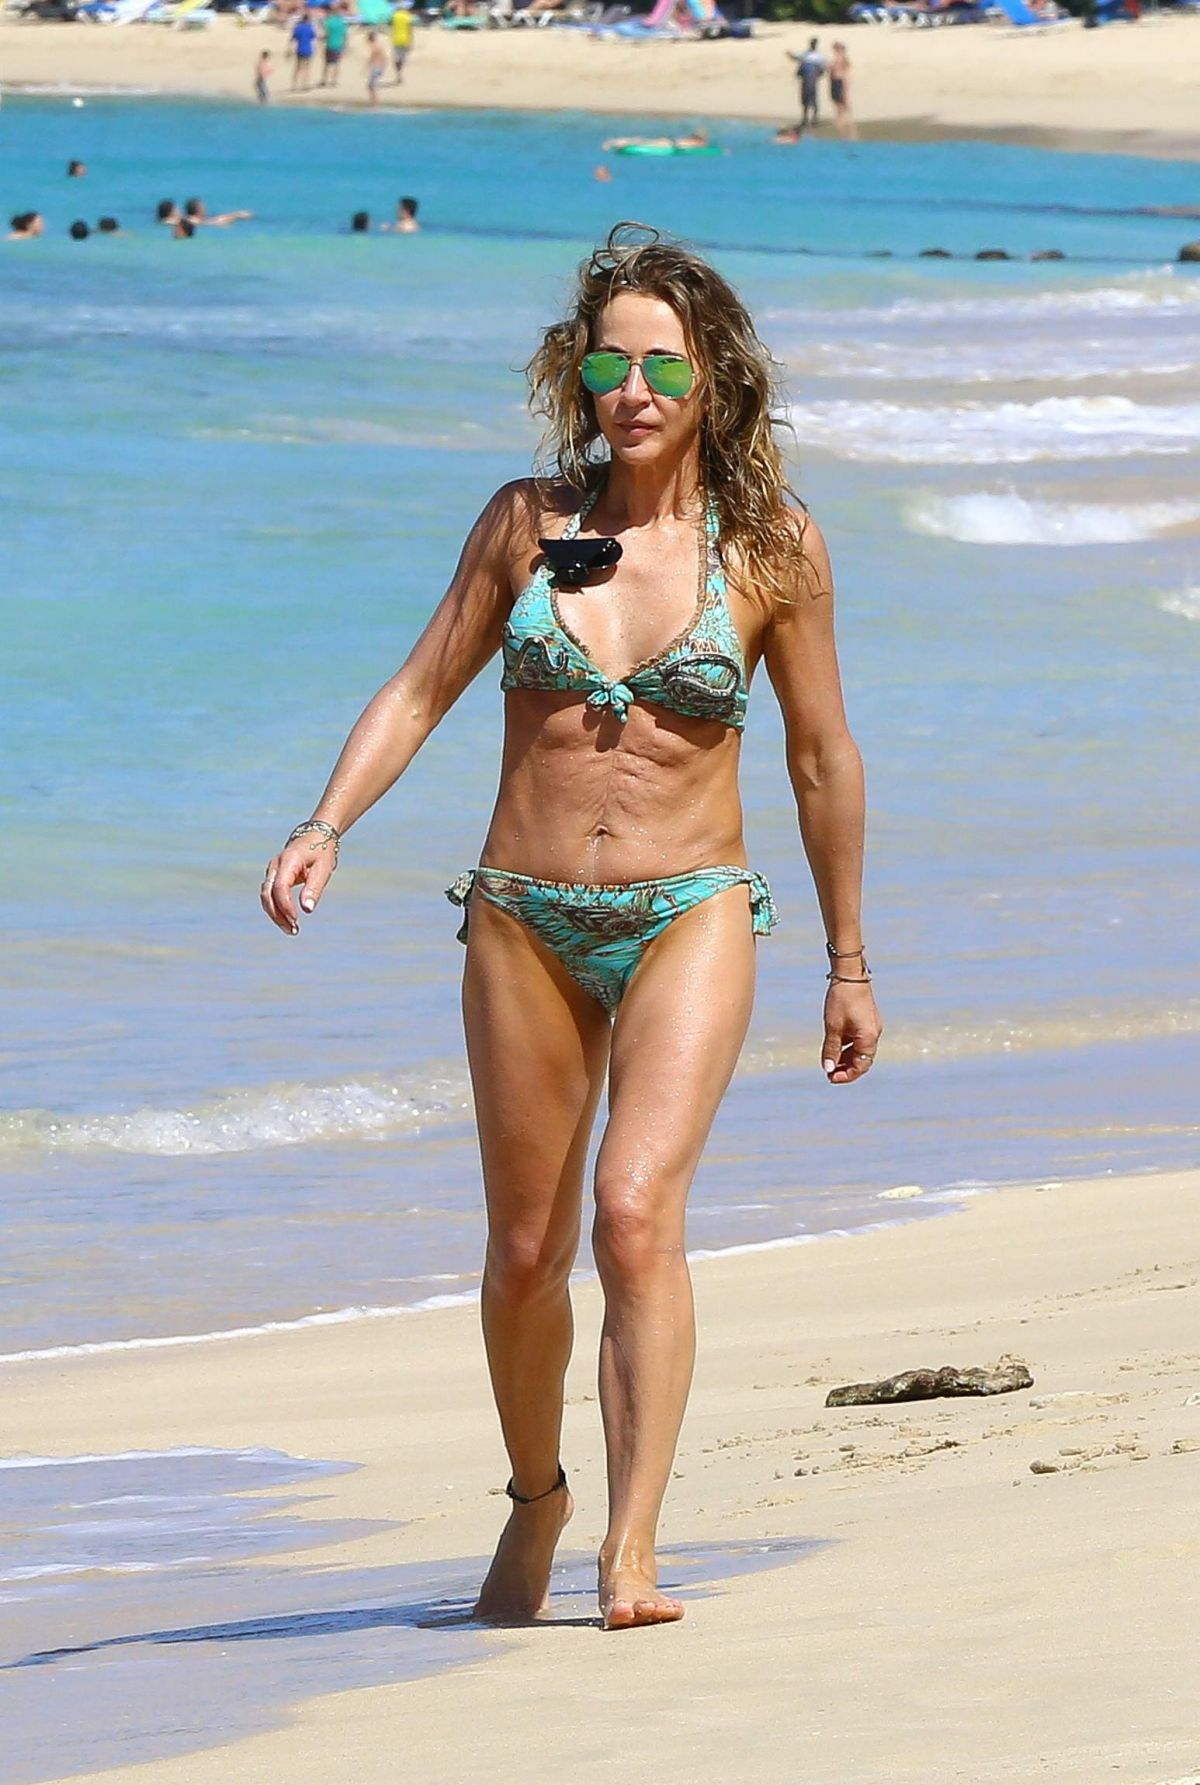 MICHELLE LINEKER in Bikini on the Beach in Barbados 12/28/2016